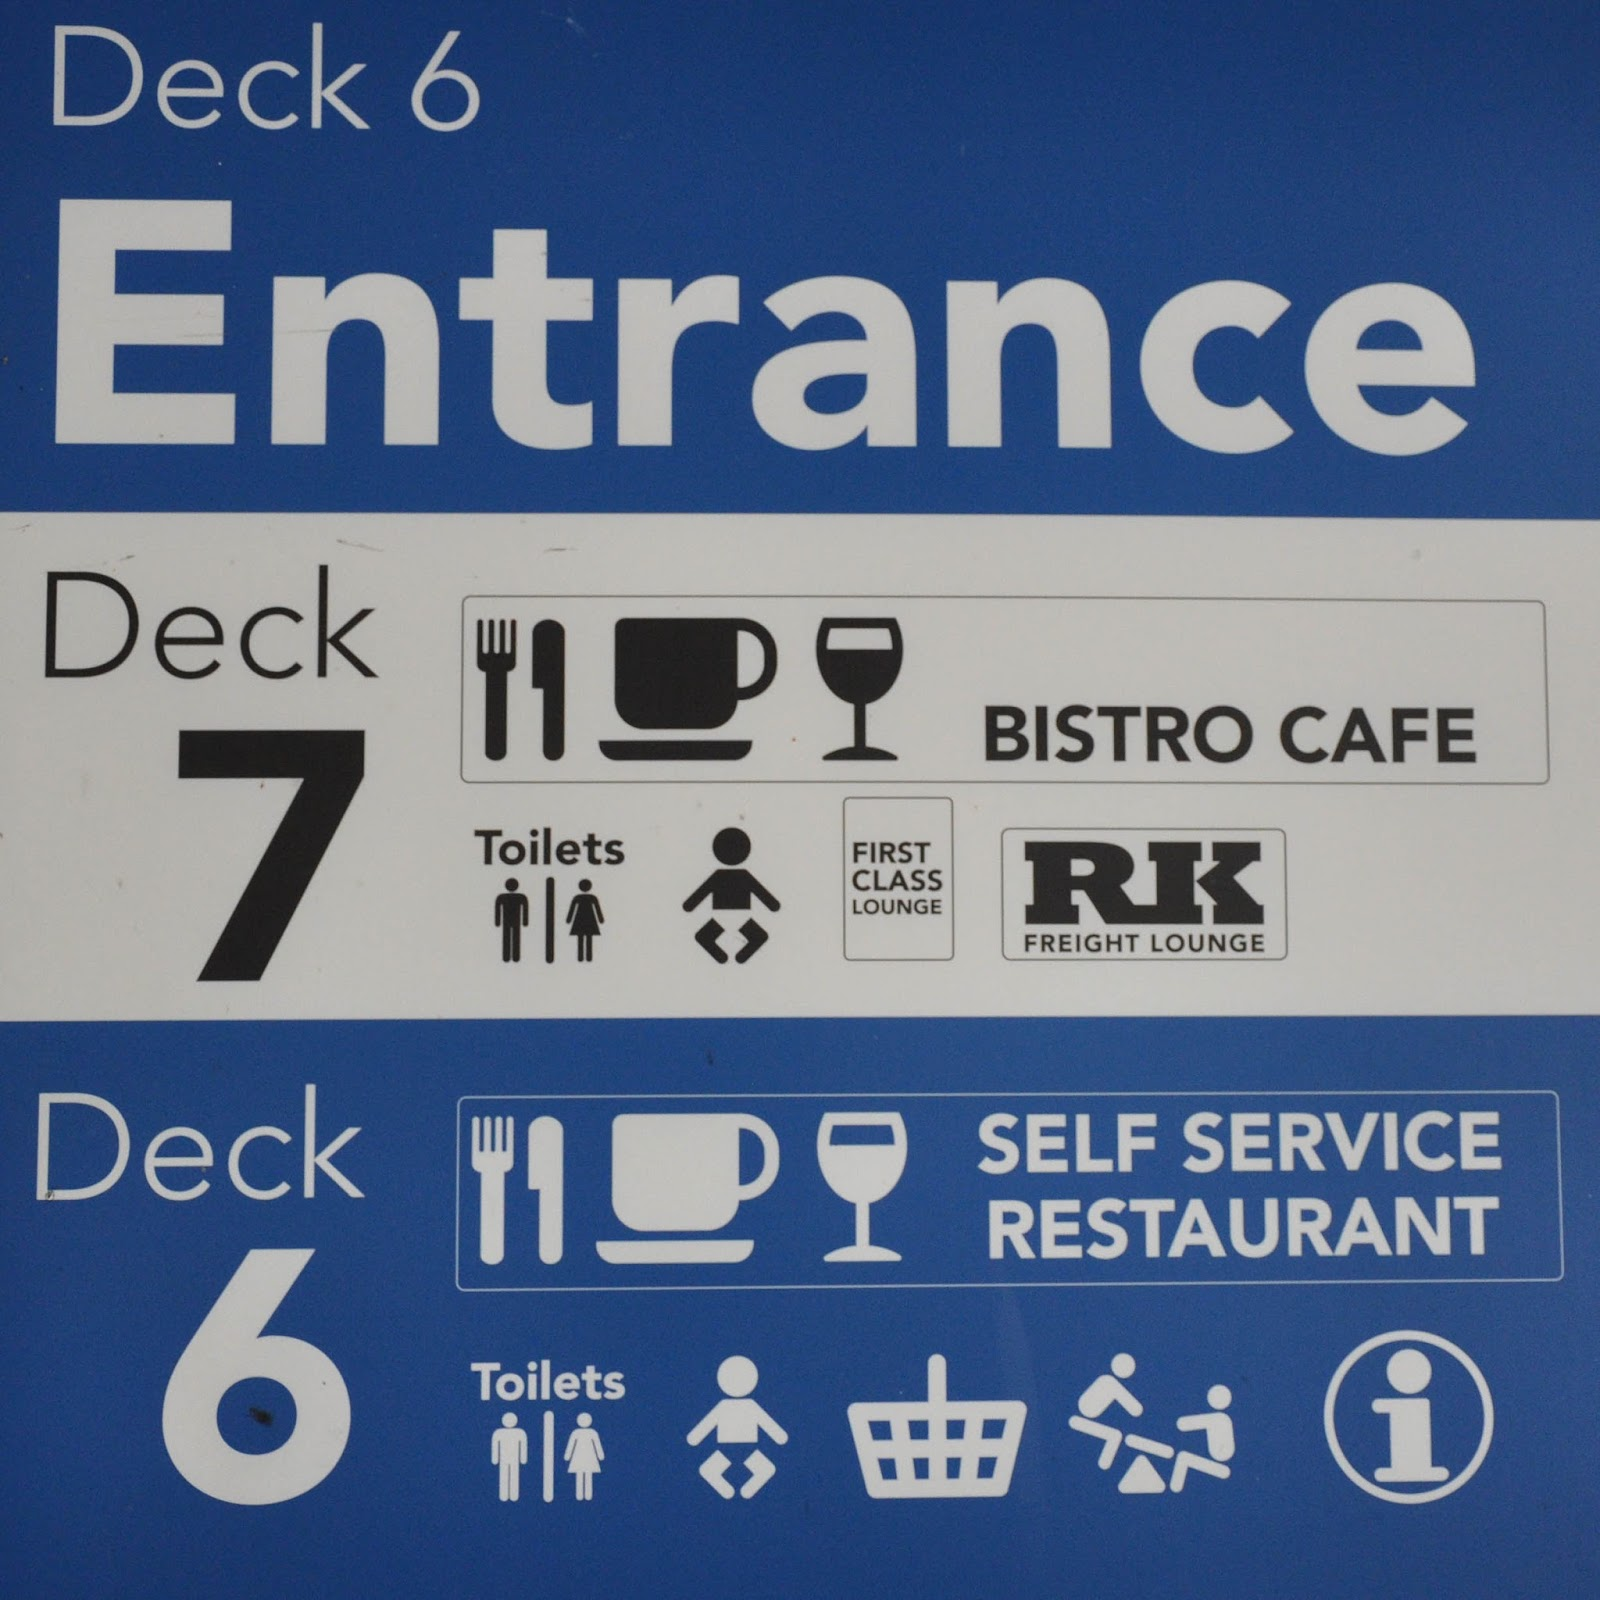 A sign on the DFDS Saeways Ferry, The English Channel, on the way back from France